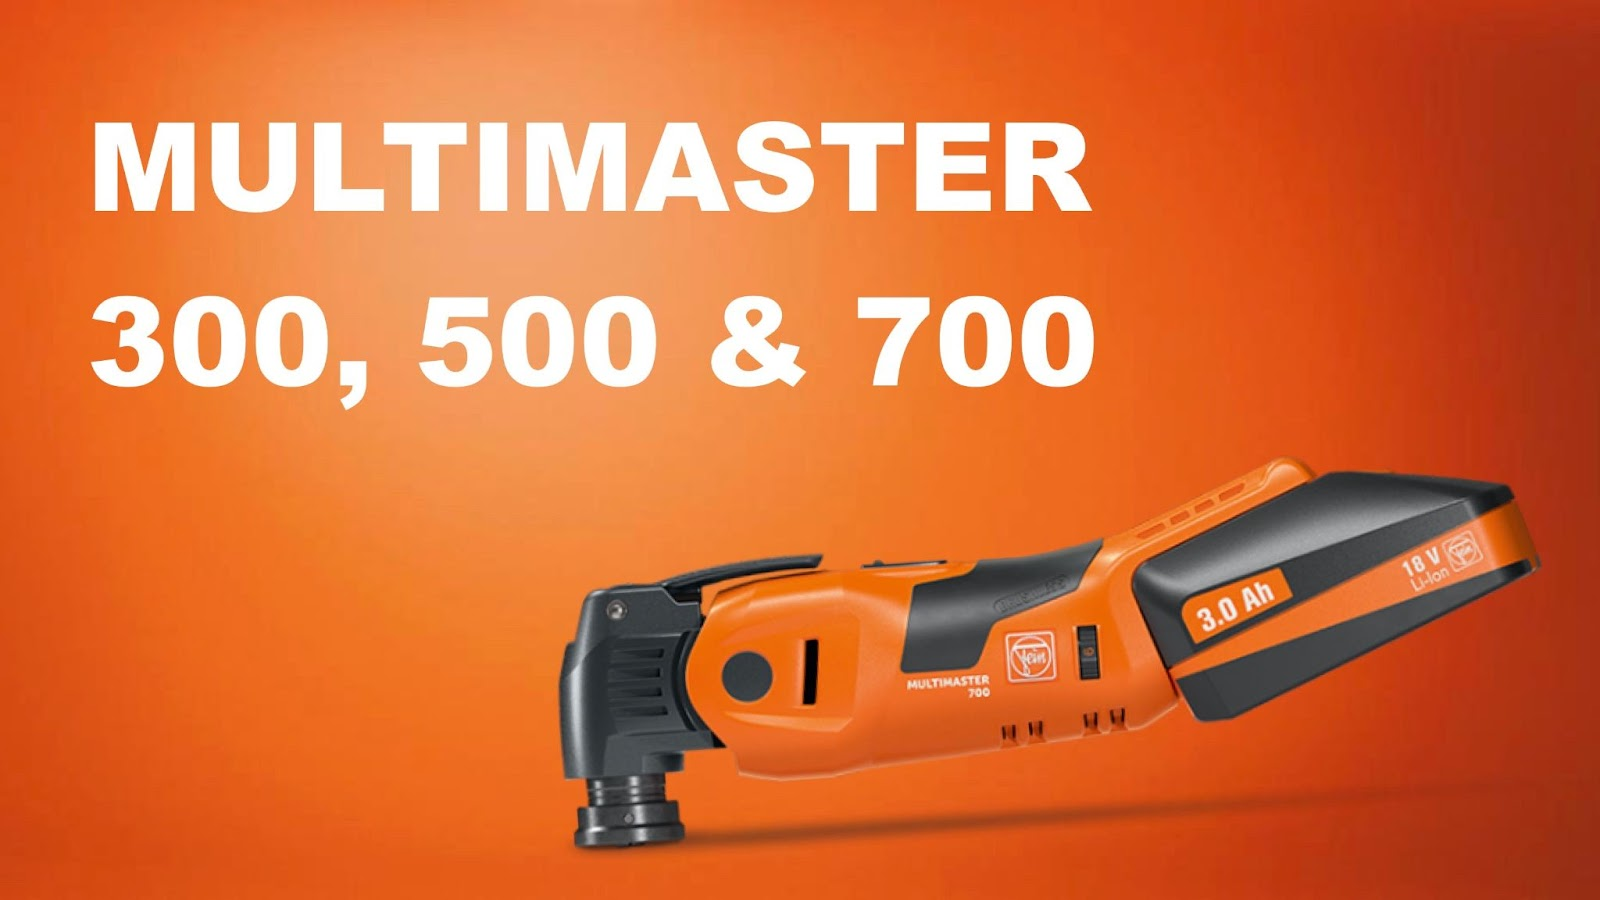 The Updated Fein MultiMaster Tool: Explore the 300, 500 & 700 Kits